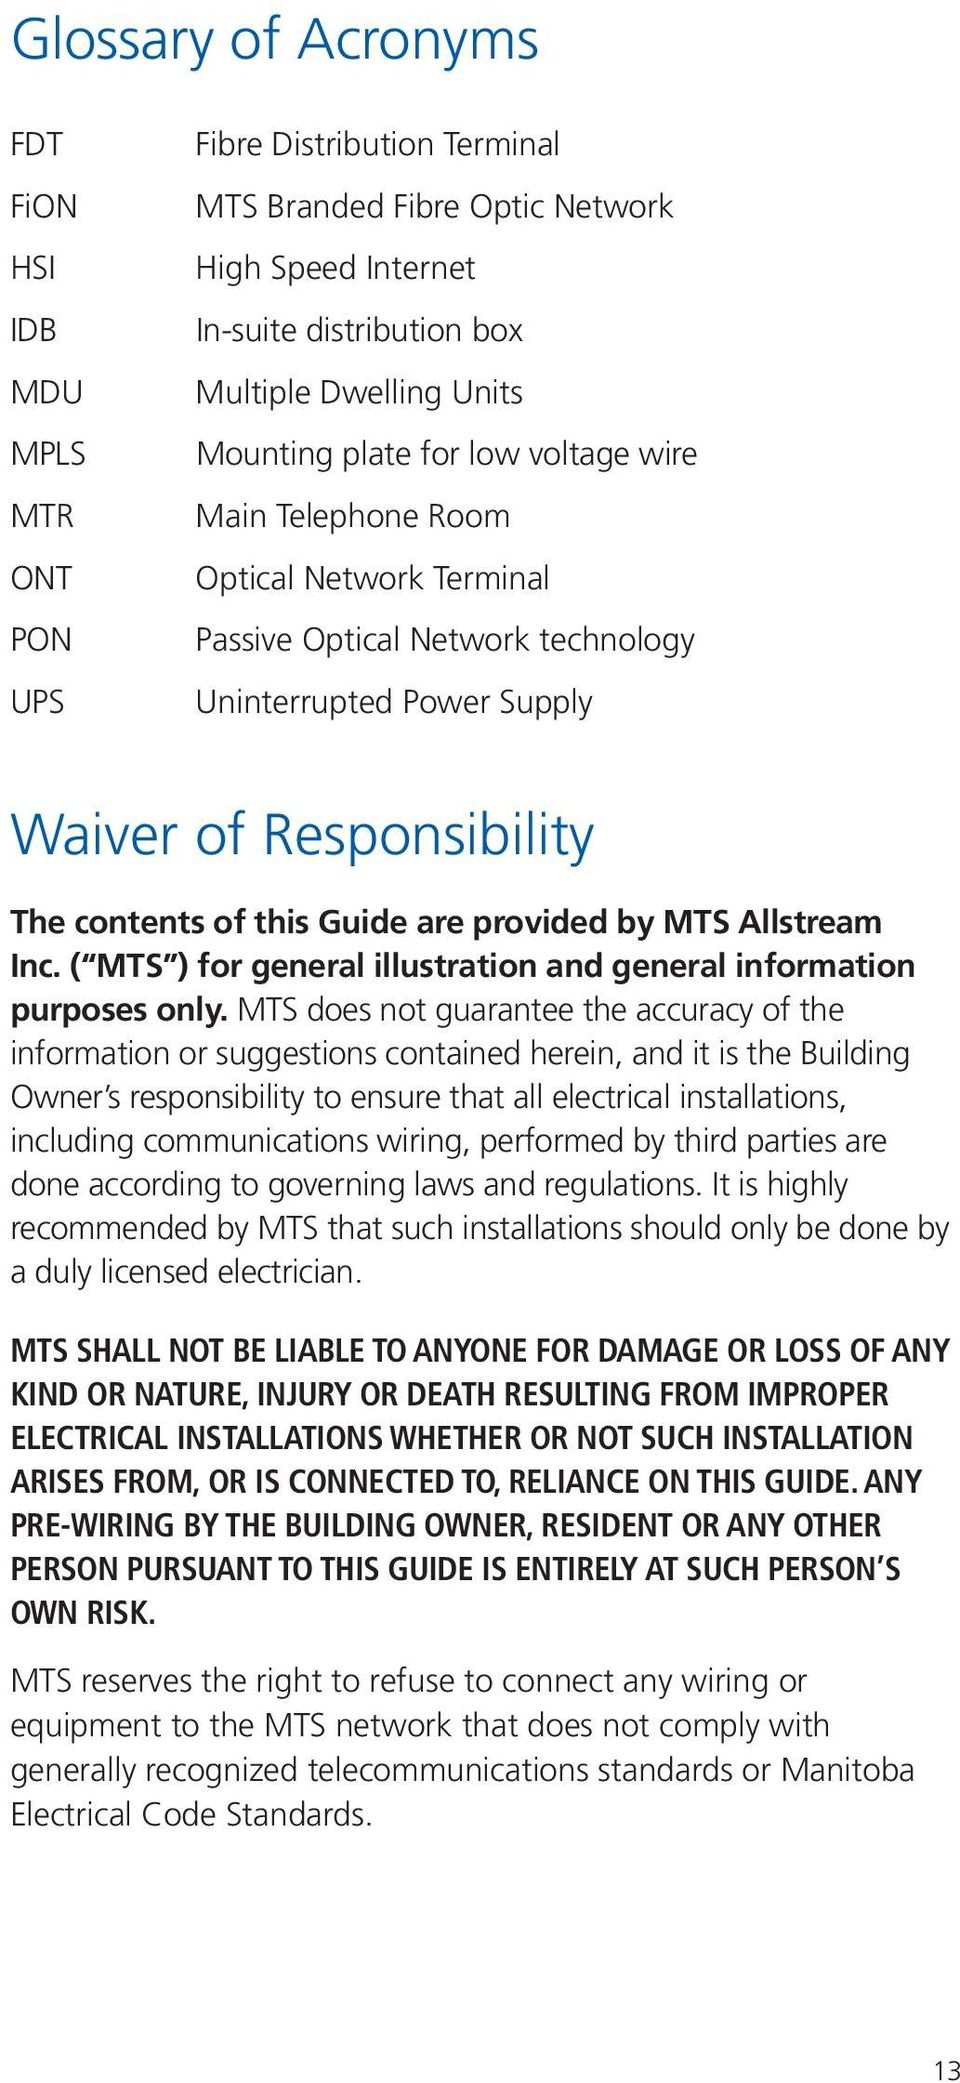 Fibre Optic Wiring Guide For Multiple Dwelling Units Mdus Pdf Low Voltage Provided By Mts Allstream Inc General Illustration And Information Purposes